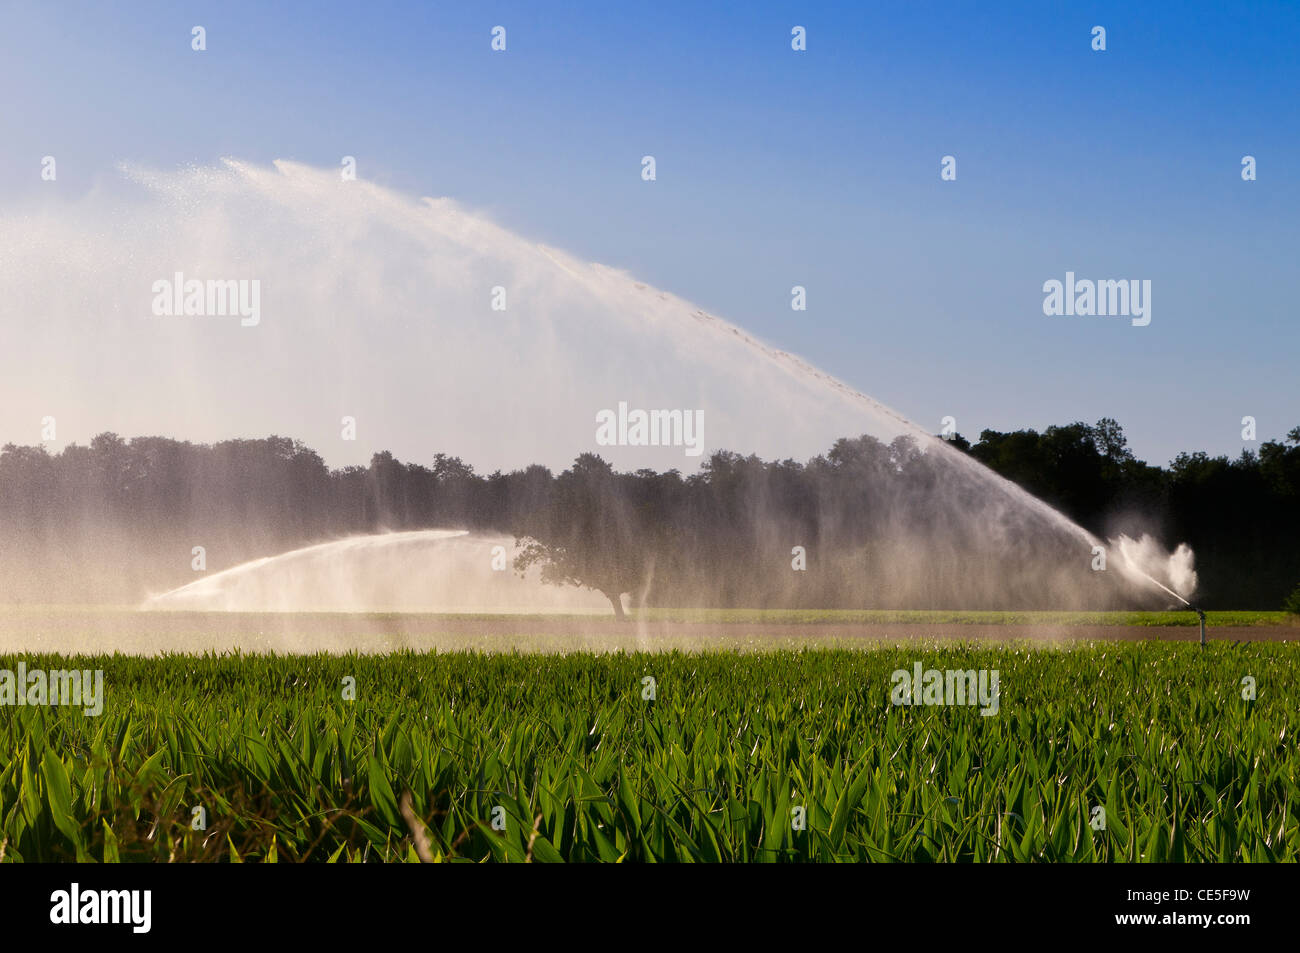 Watering of maize field in Limagne, Auvergne, France - Stock Image